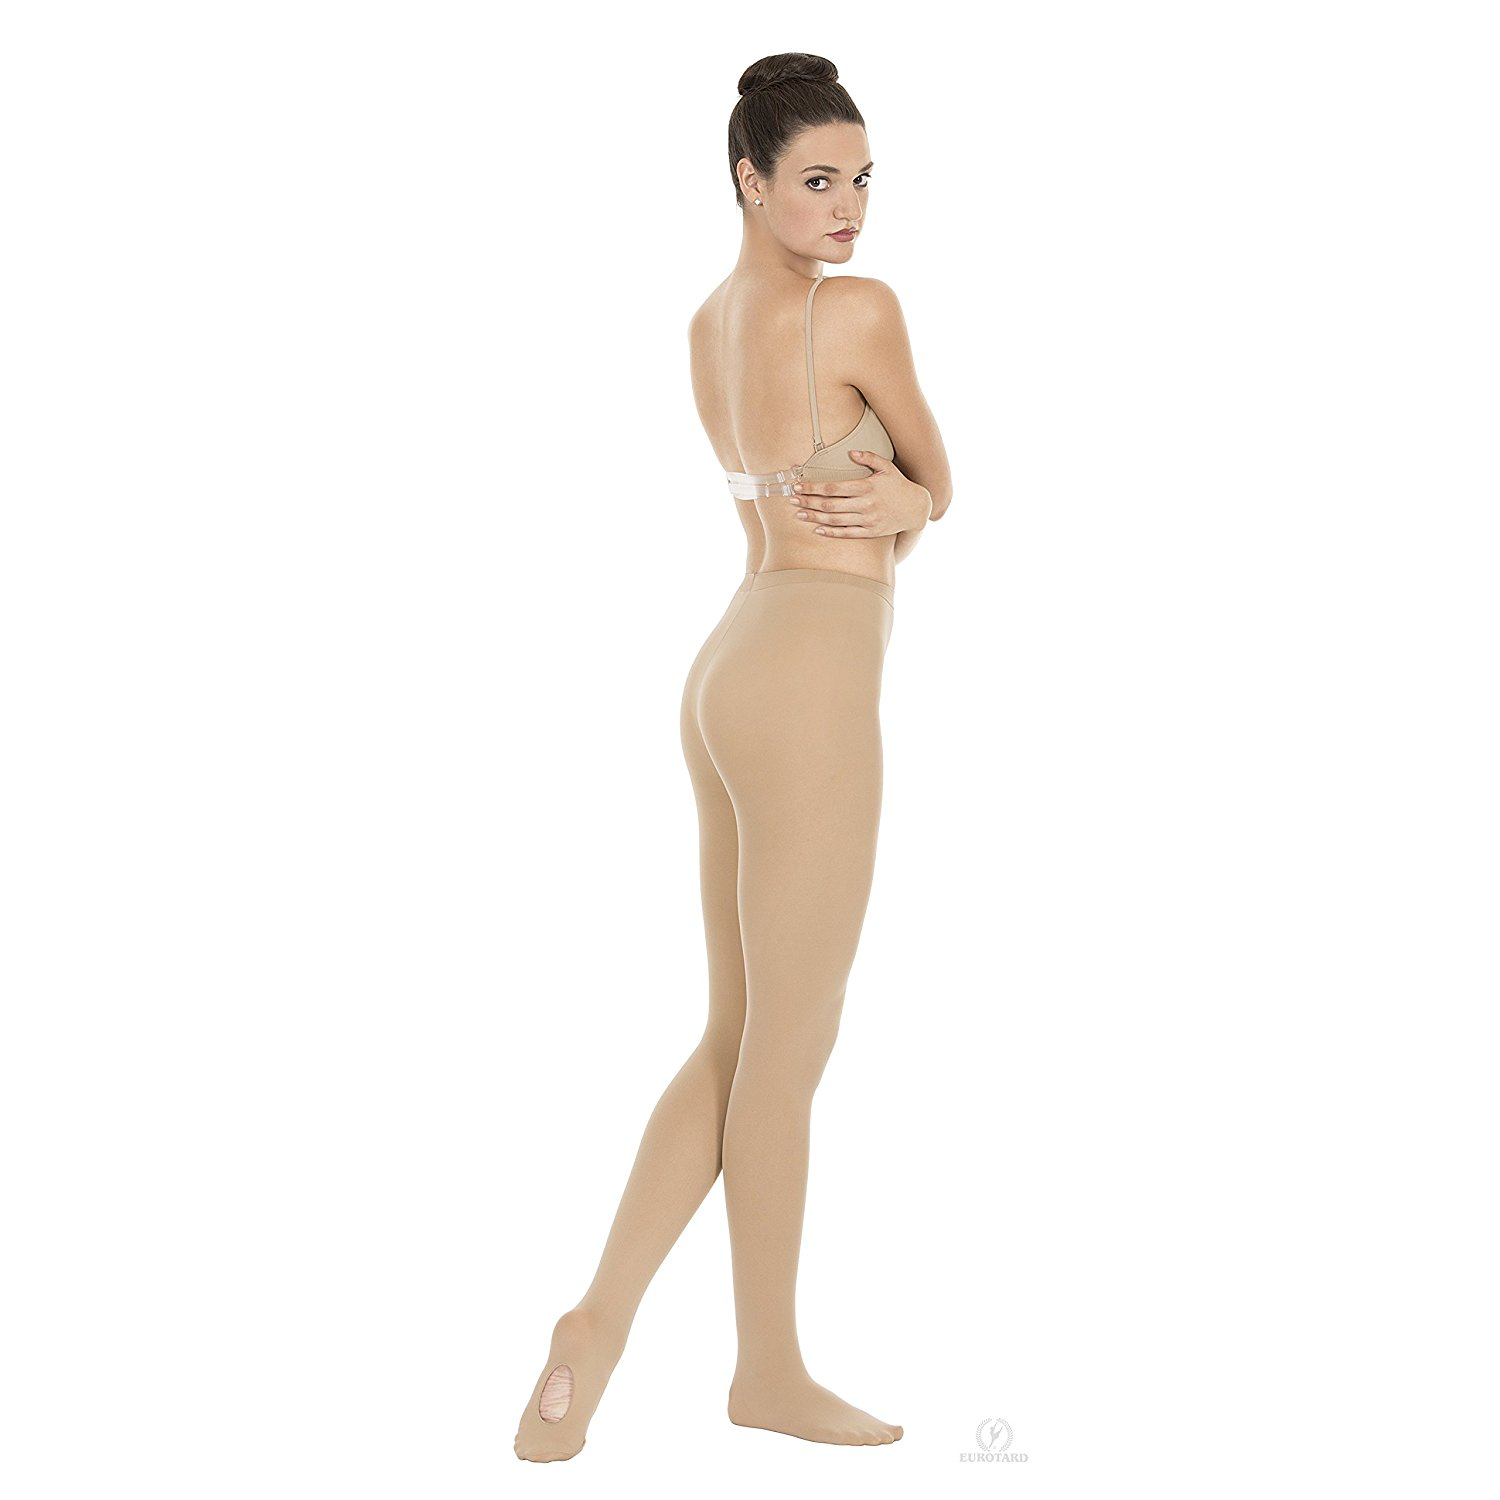 New 3 Pairs Women/'s Footless Ice Skating Tights Black Large 1813 Free Shipping